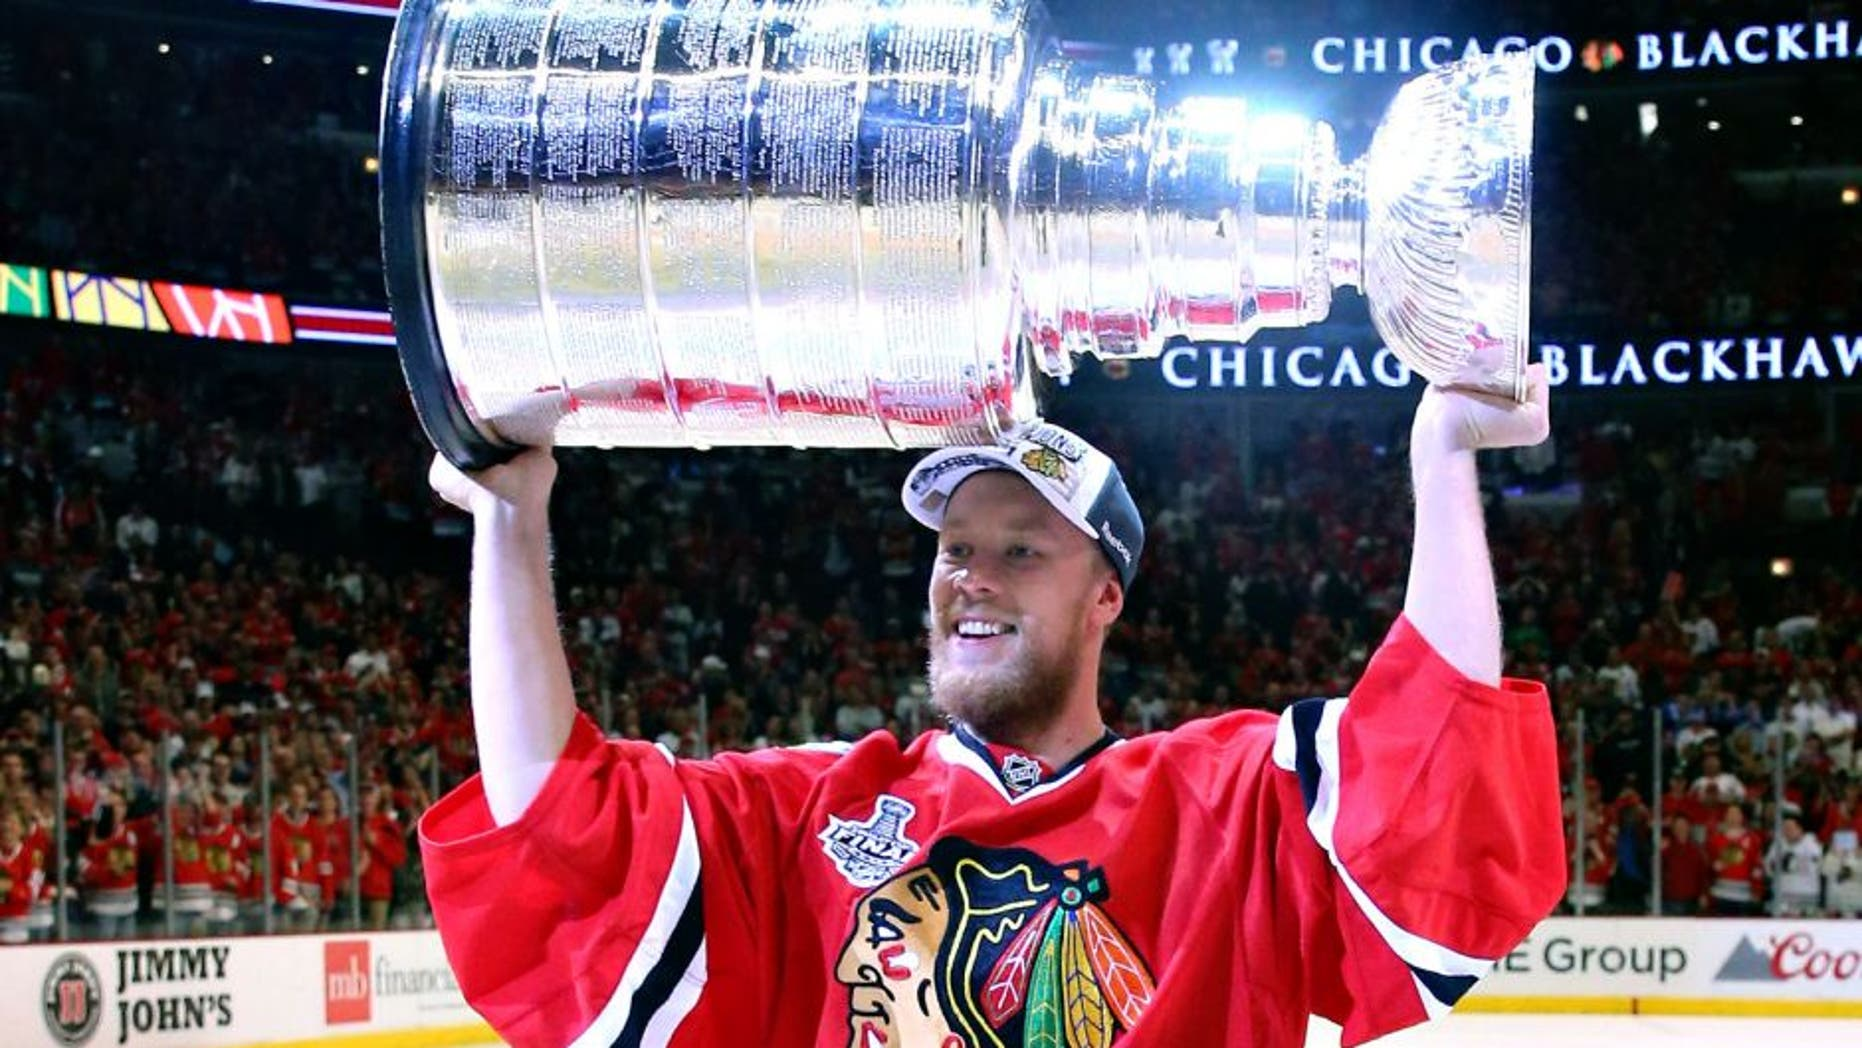 CHICAGO, IL - JUNE 15: Antti Raanta #31 of the Chicago Blackhawks celebrates with the Stanley Cup after defeating the Tampa Bay Lightning by a score of 2-0 in Game Six to win the 2015 NHL Stanley Cup Final at the United Center on June 15, 2015 in Chicago, Illinois. (Photo by Bruce Bennett/Getty Images)